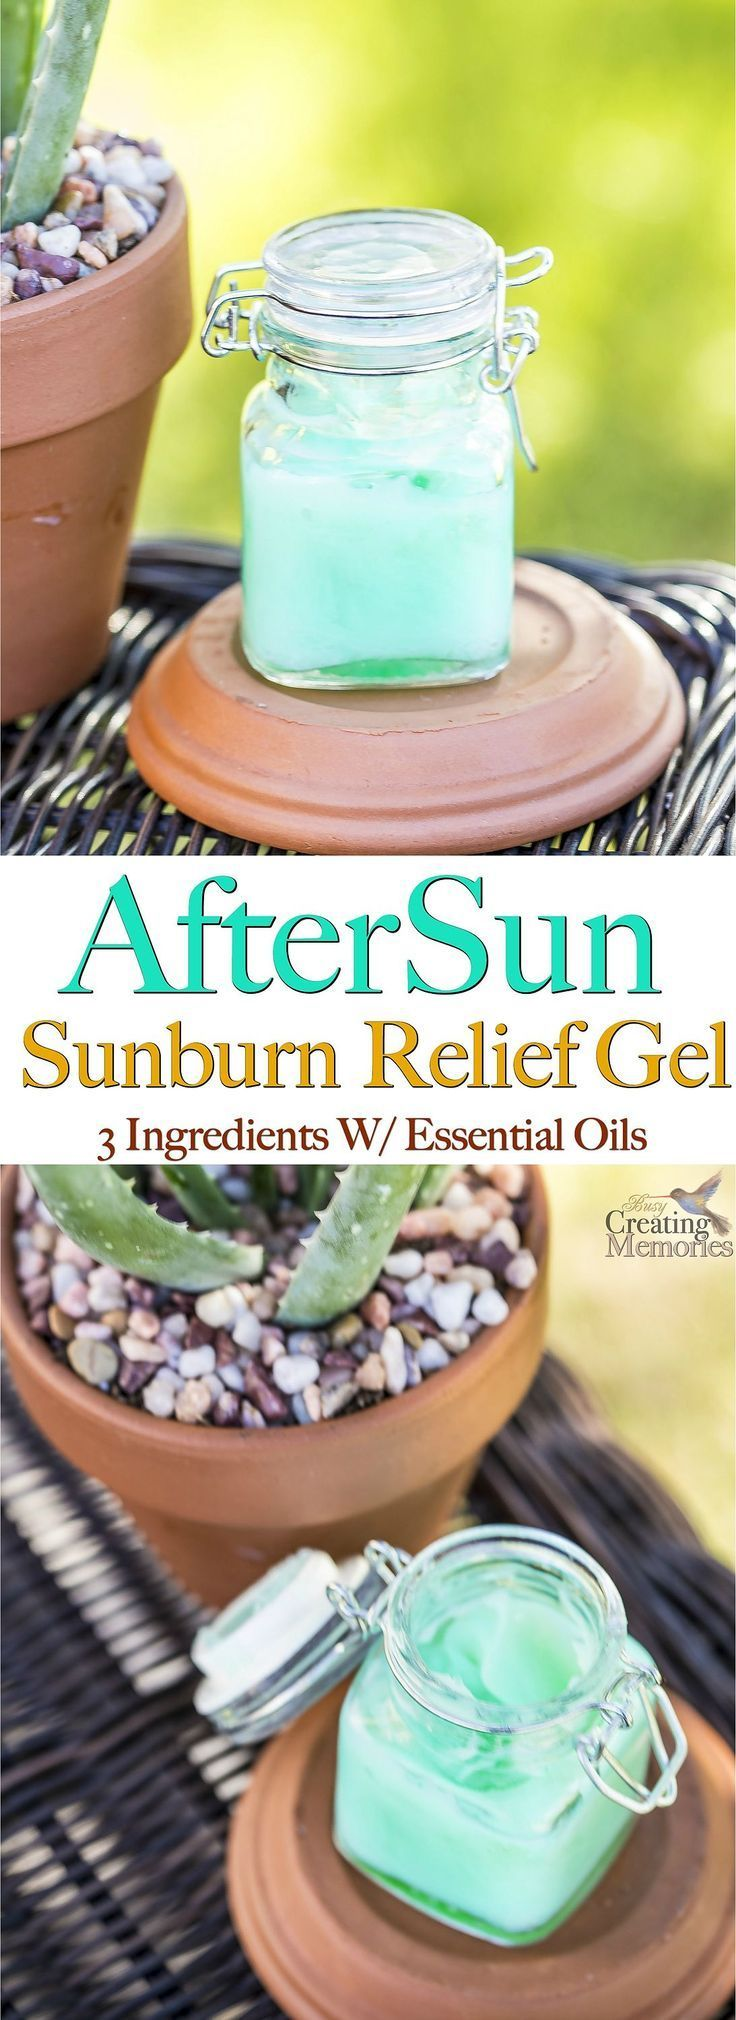 Say Goodbye to Painful, Itchy, Peeling sunburns and hello to fabulous summer skin care after the sun! This DIY AfterSun Sunburn relief Gel is the BEST as it instantly Soothes, Cools, heals and moisturizes your skin for quick healing. It is homemade with 3 ingredients!